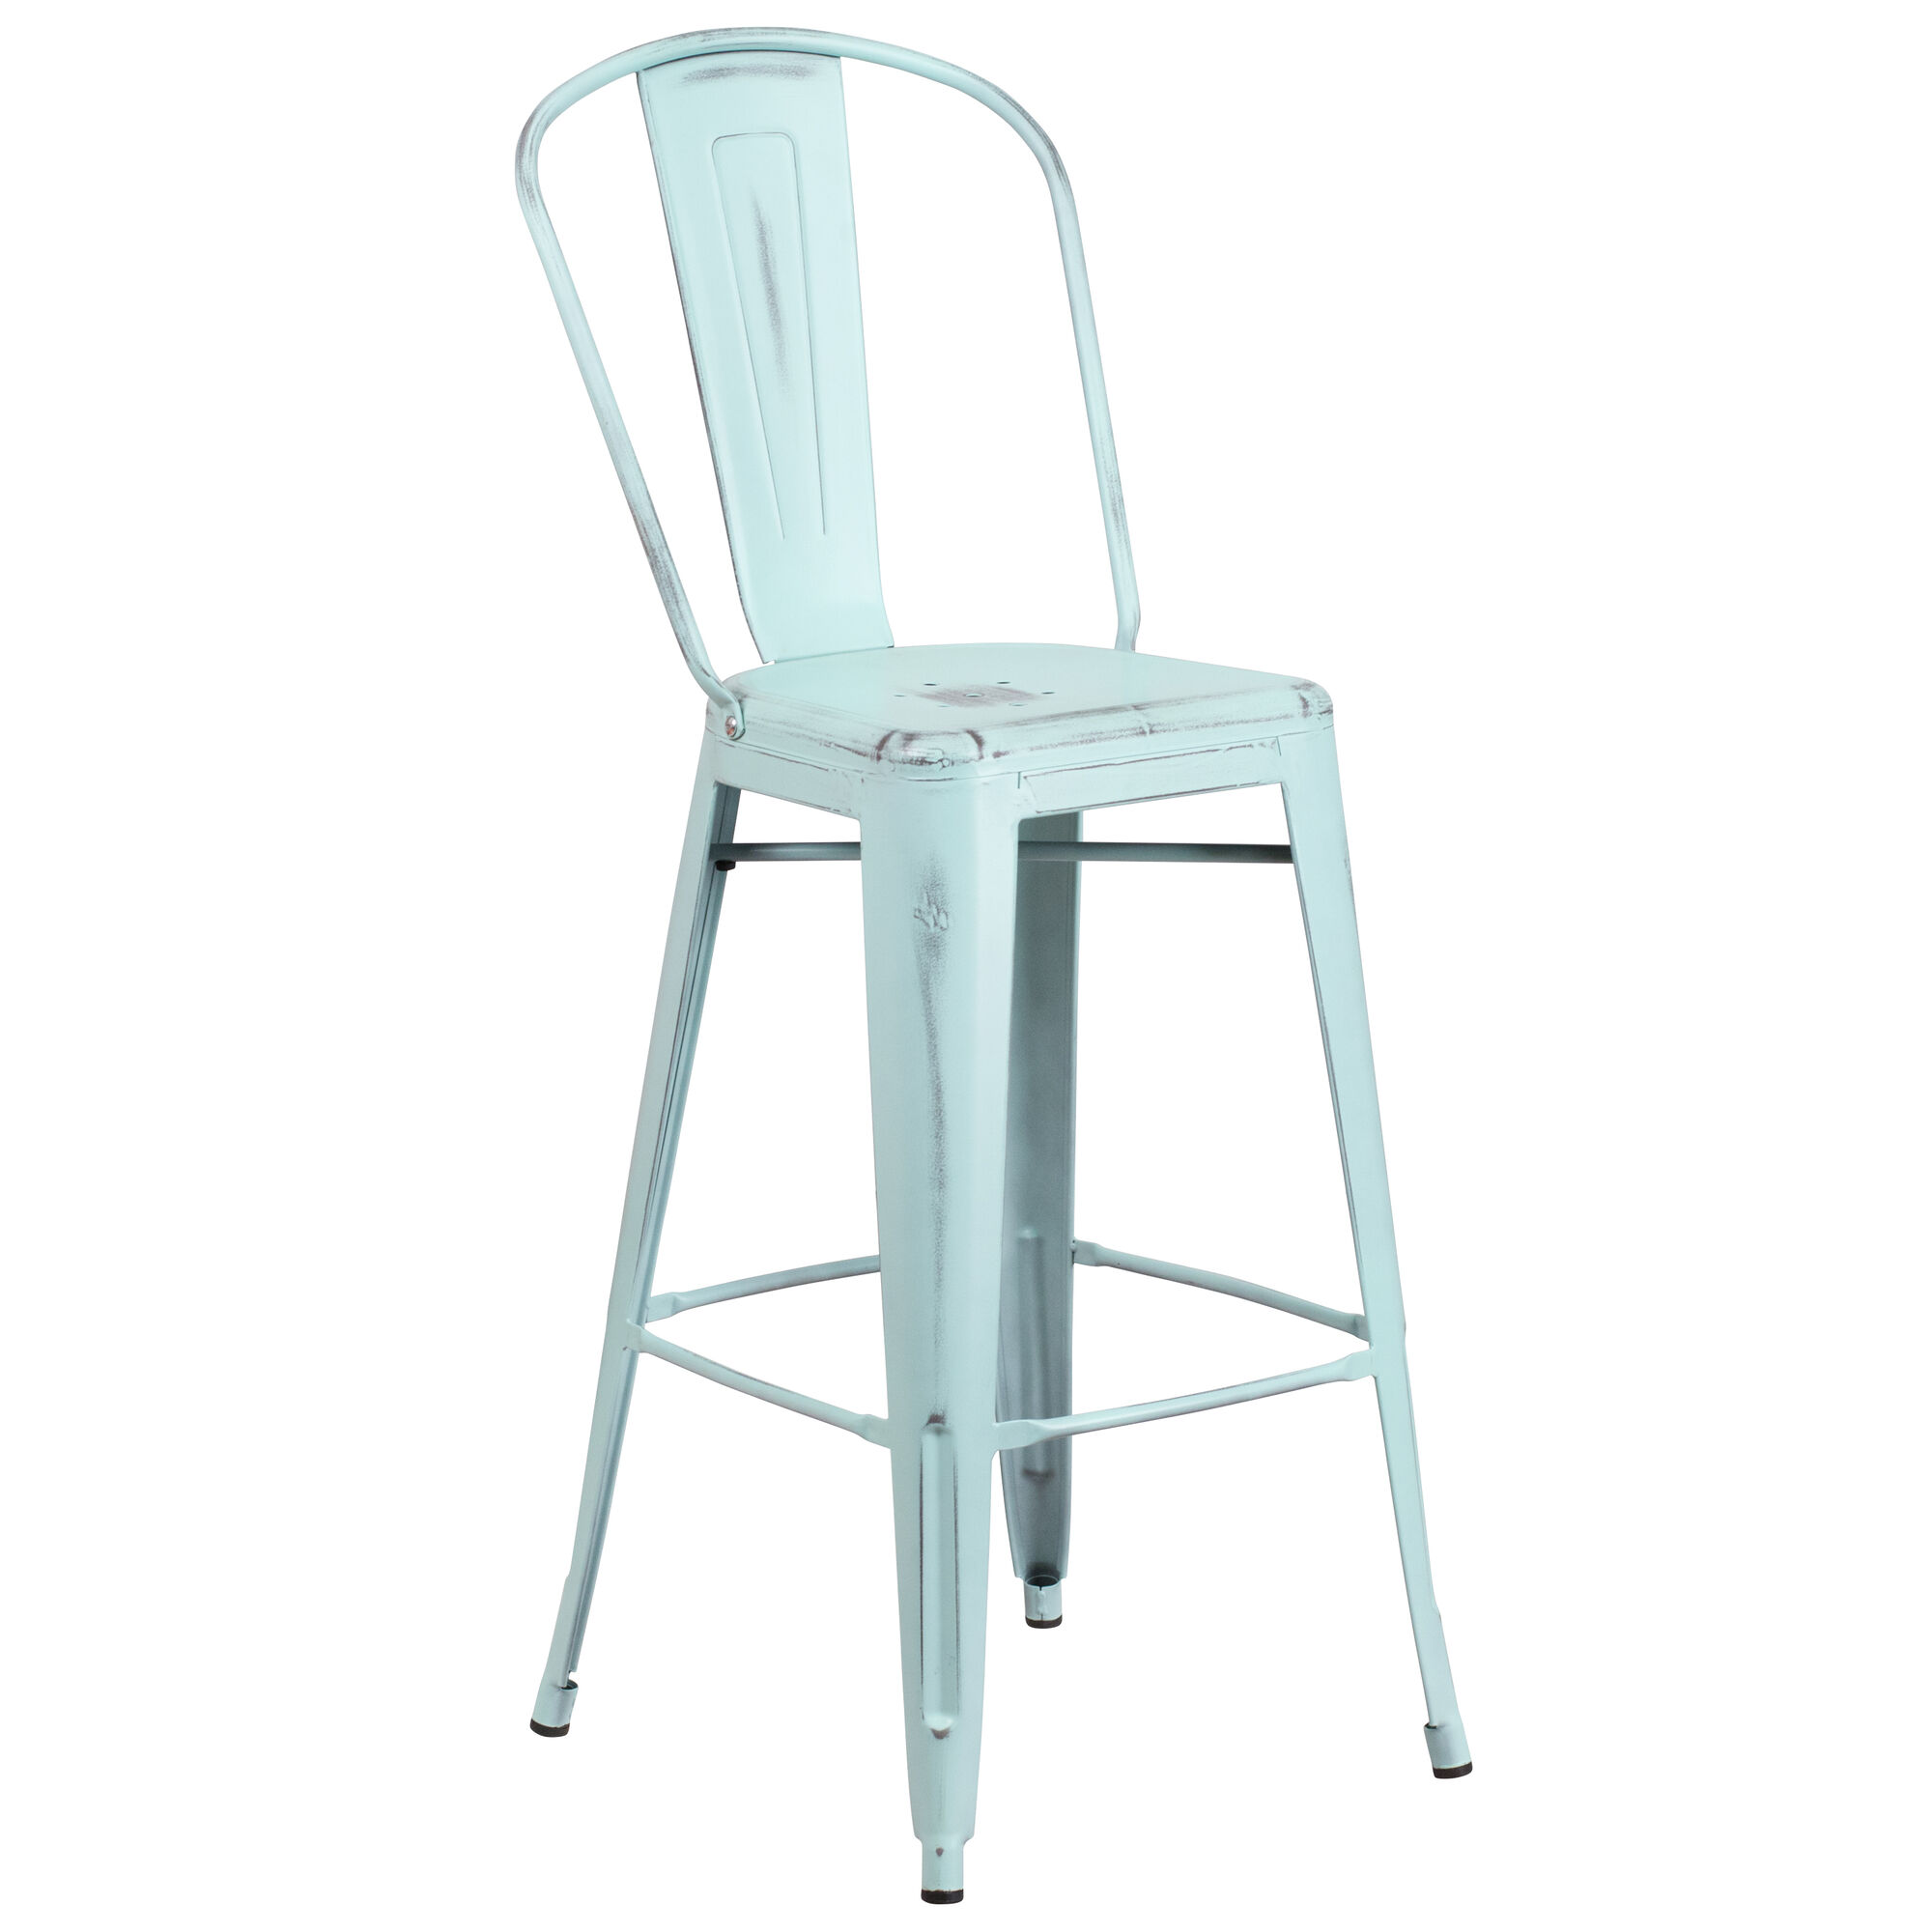 Awesome Commercial Grade 30 High Distressed Green Blue Metal Indoor Outdoor Barstool With Back Pabps2019 Chair Design Images Pabps2019Com